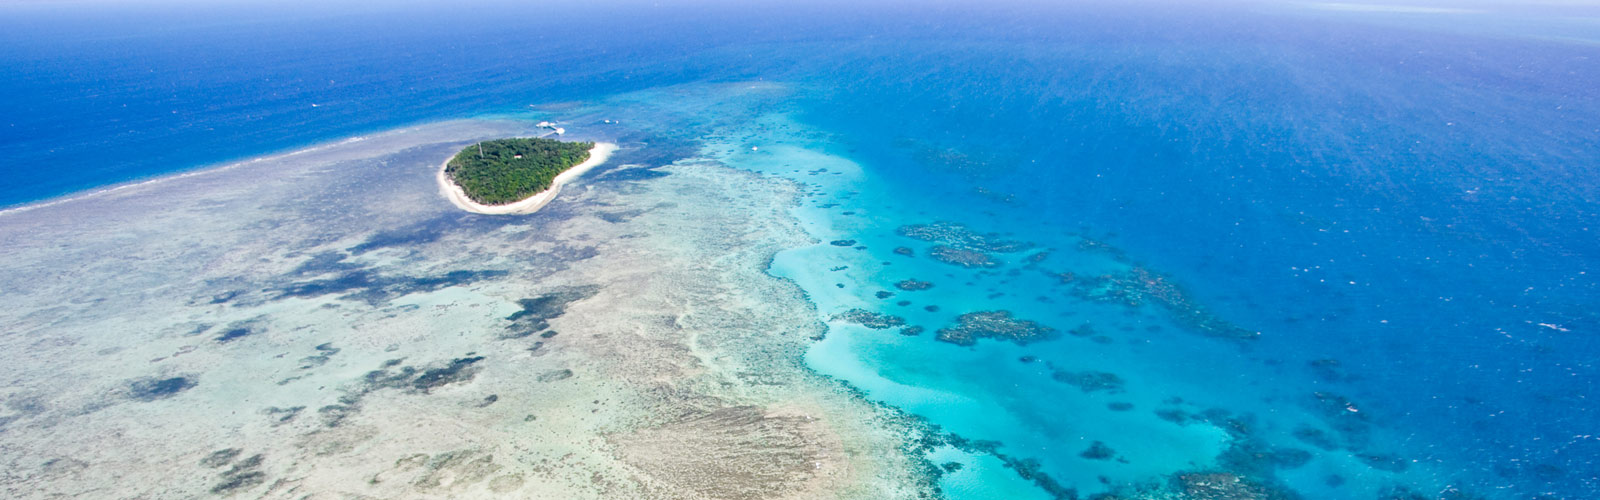 Green Island, Great Barrier Reef